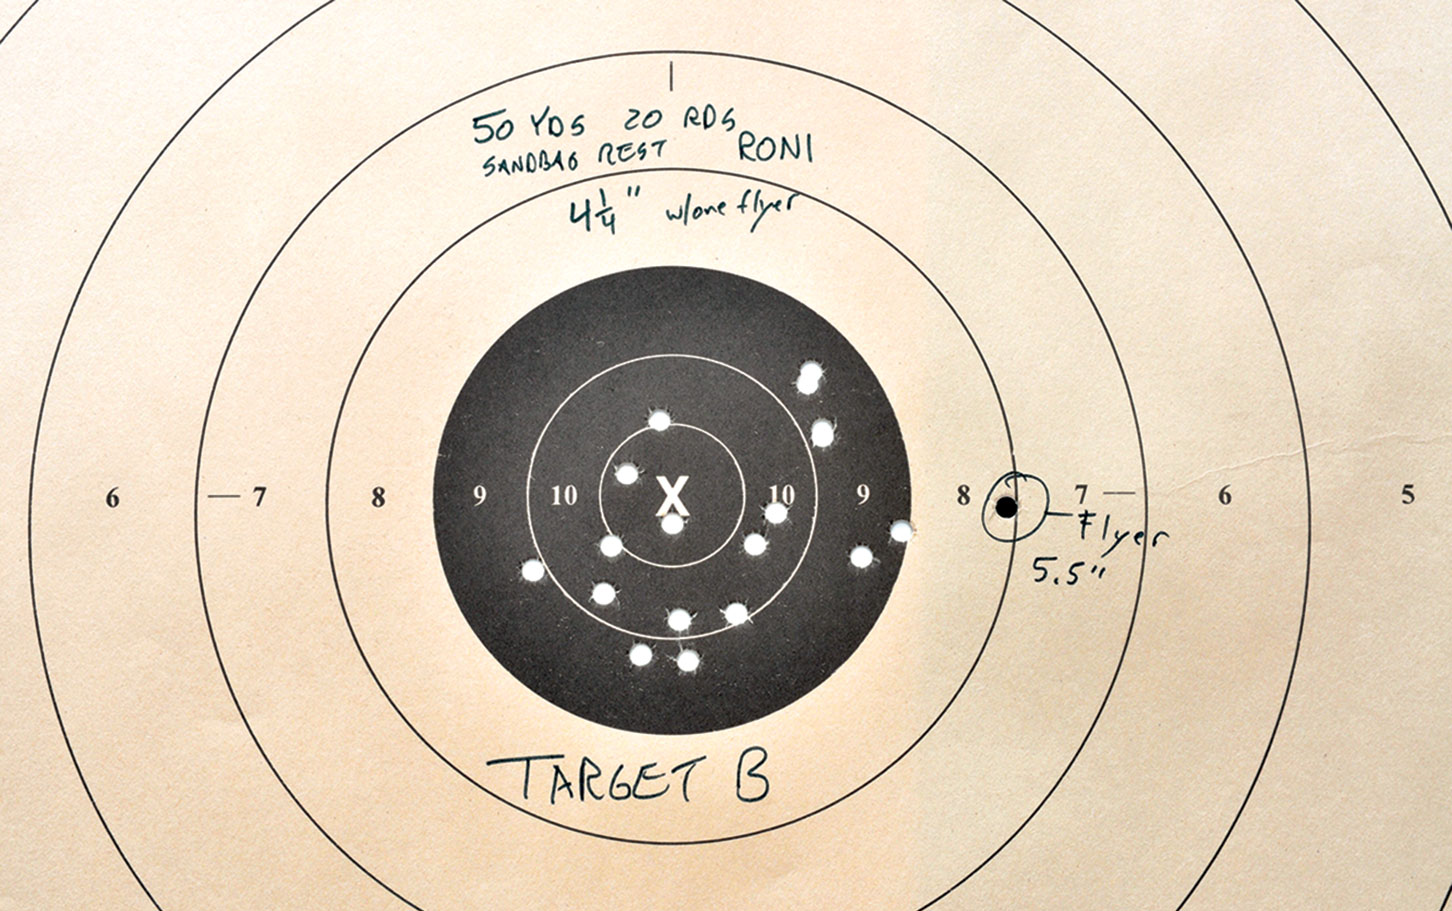 Target B:  If you excuse the one flyer, Tarr shot a 4.25-inch 20-shot group at 50 yards shooting the  Micro RONI Stabilizer off sandbags. That is far more accurate shooting than he can accomplish just using a Glock 19.